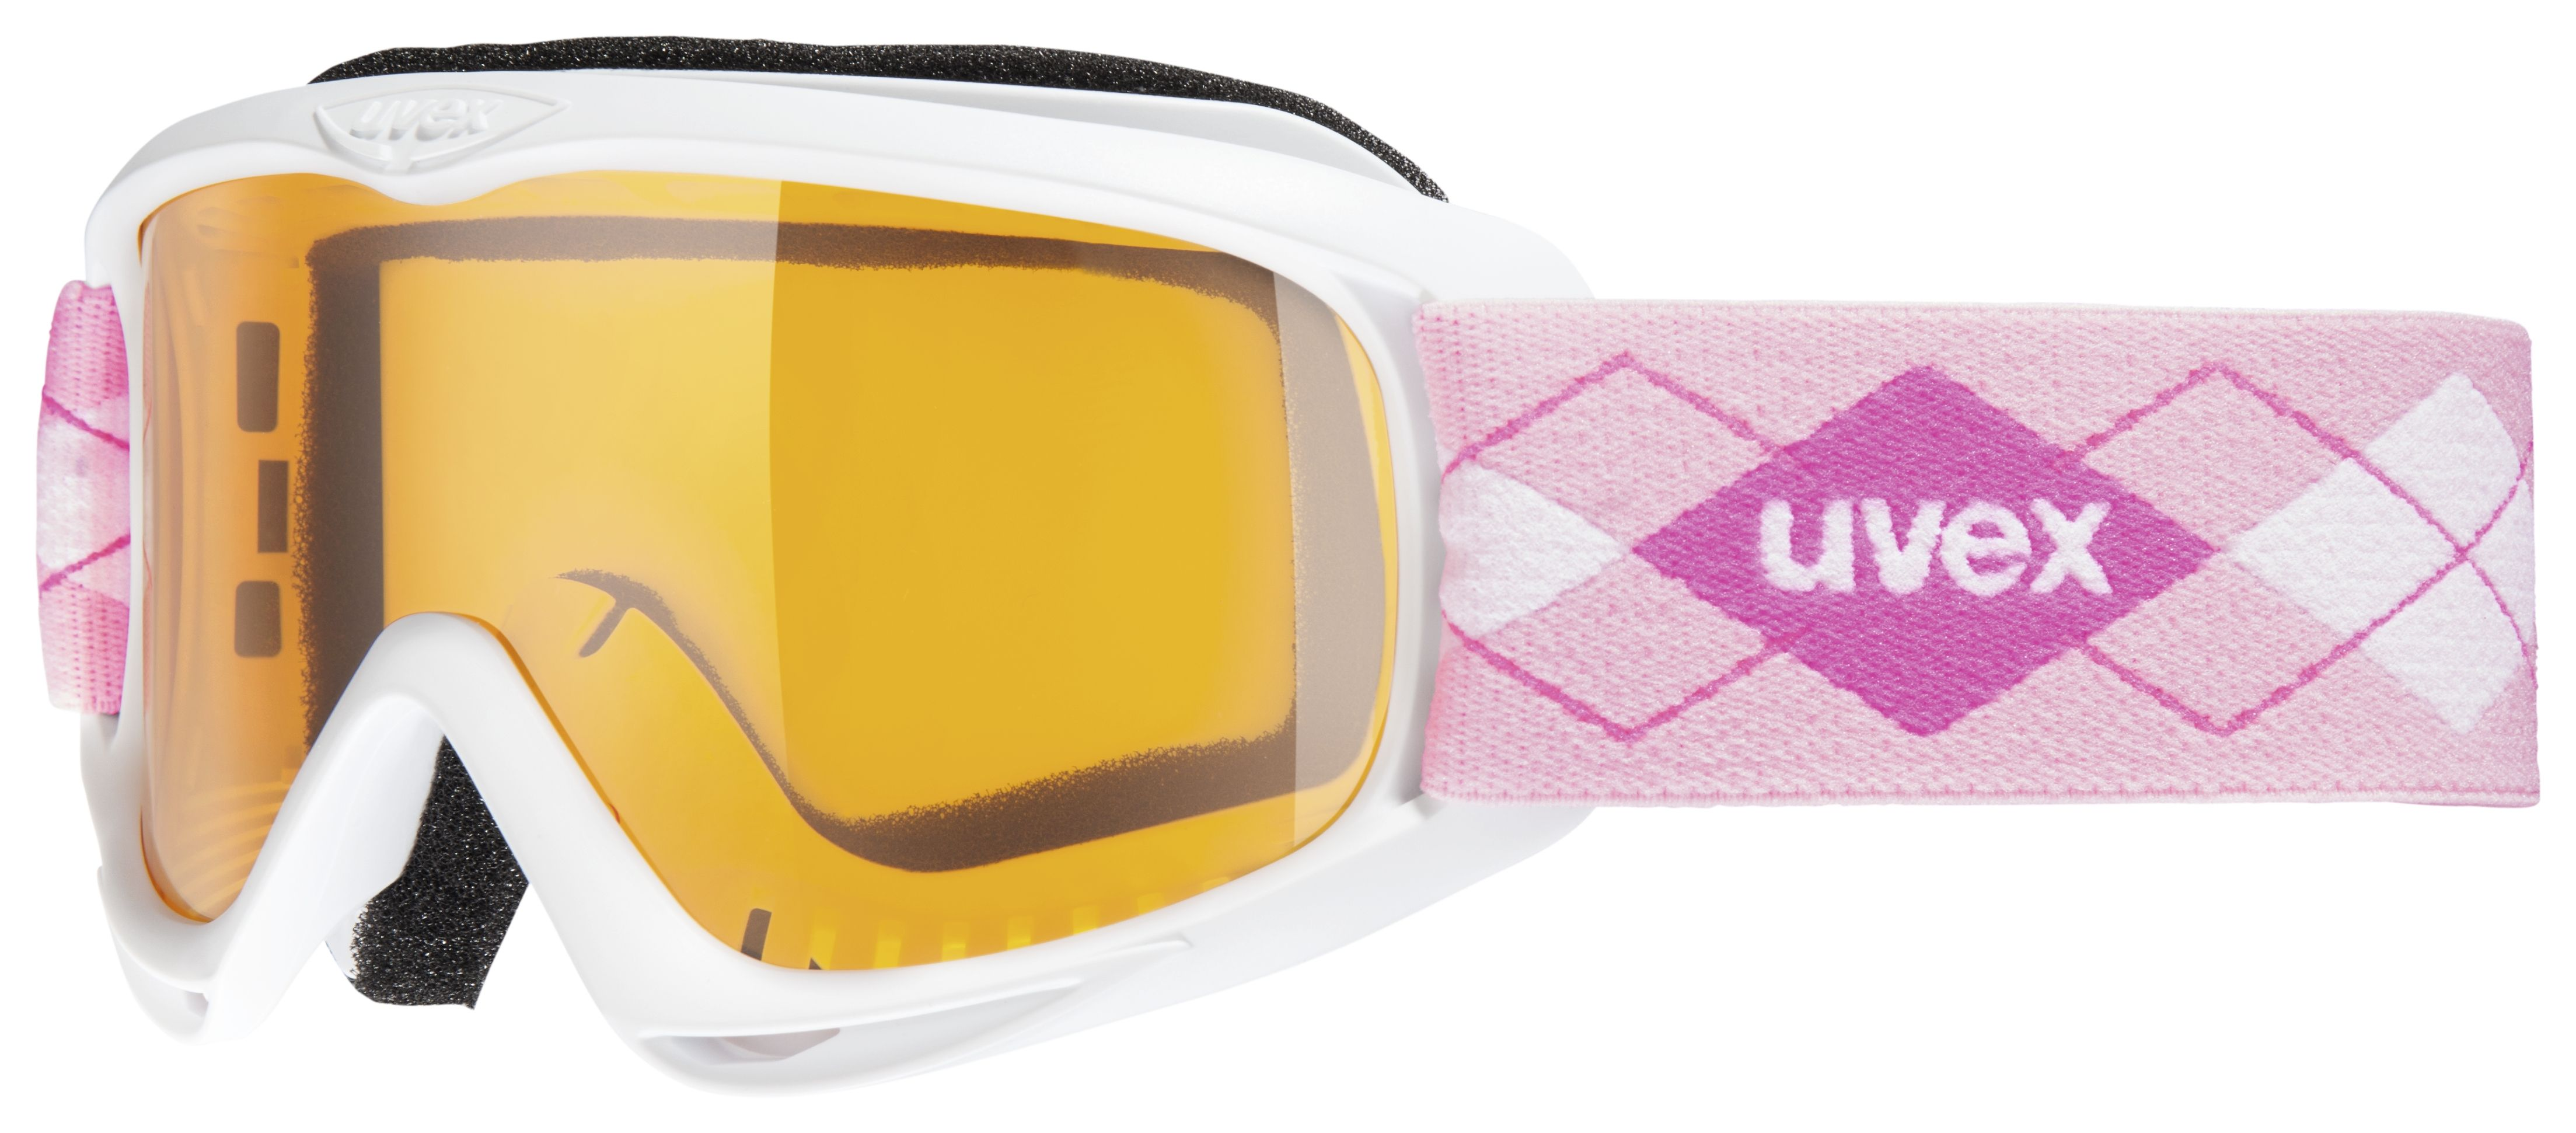 uvex snowcat // Safe action from the very beginning! The